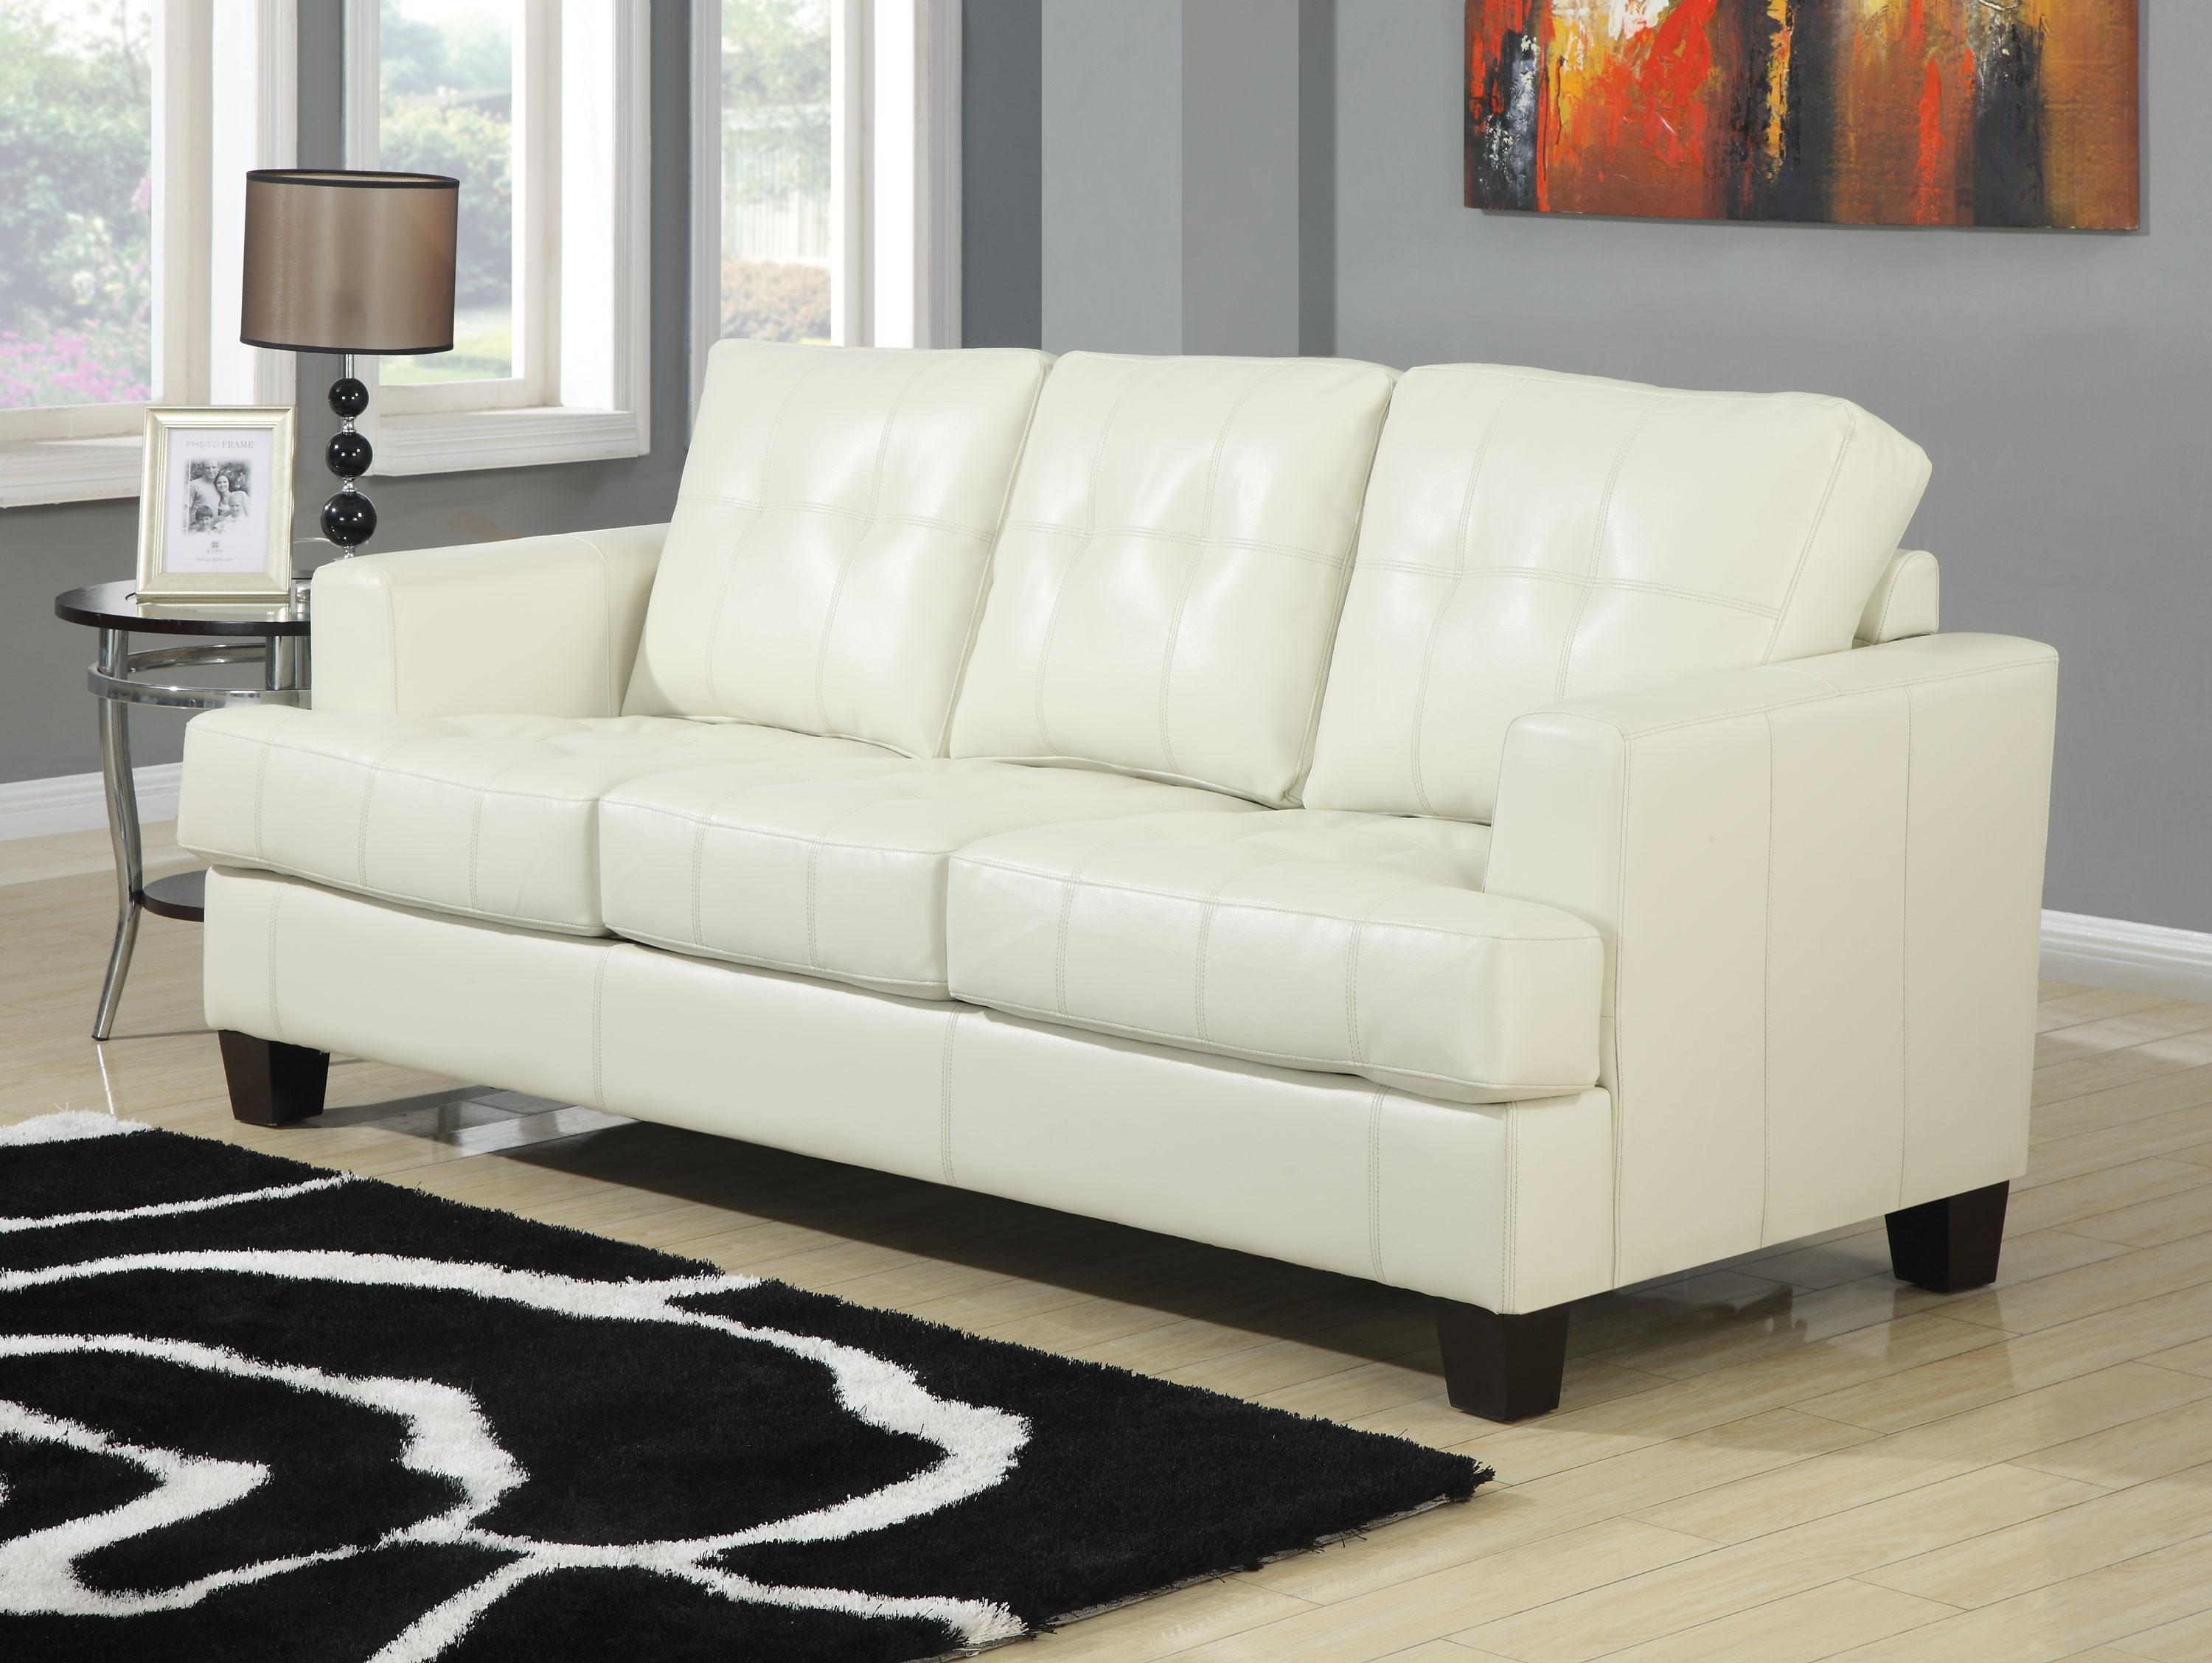 Cream Color Leather Sofa Set Gallery Image Iransafebox The Company Pertaining To Cream Colored Sofa (Image 4 of 20)